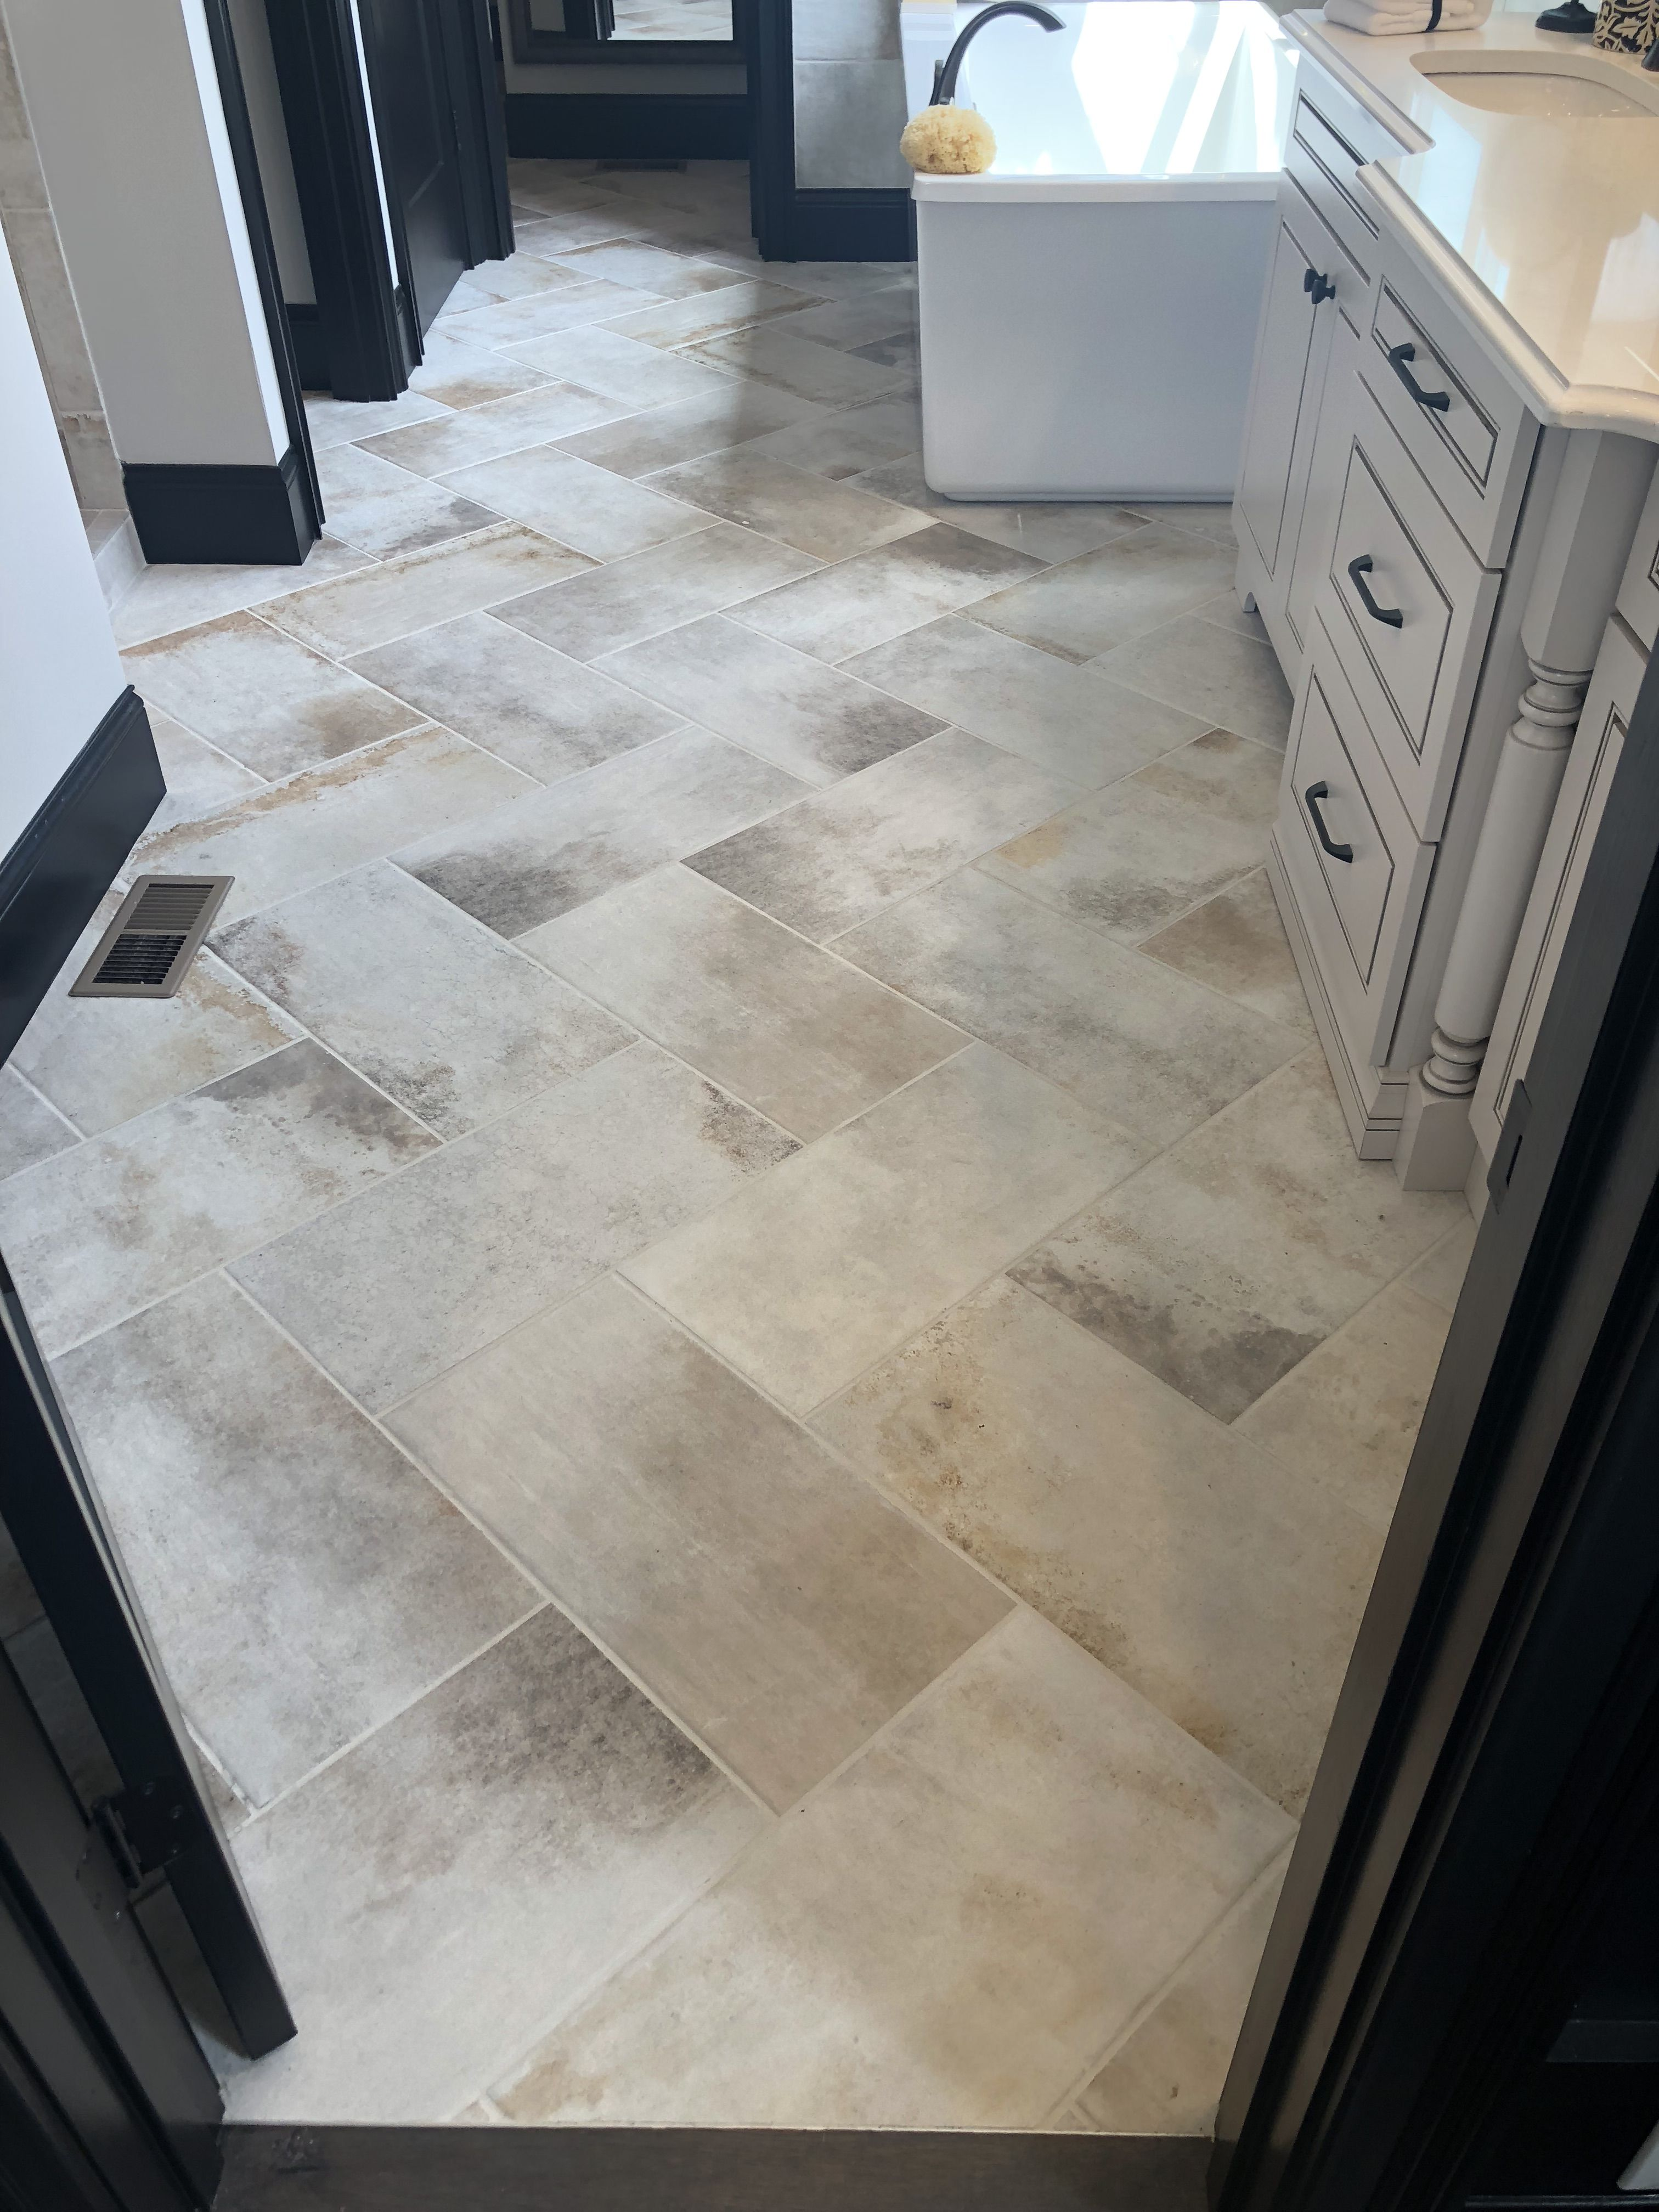 Cotto Contempo 12x24 Pennsylvania Ave Installed Herringbone Pattern Patterned Bathroom Tiles Bathroom Floor Tile Patterns Herringbone Tile Floors